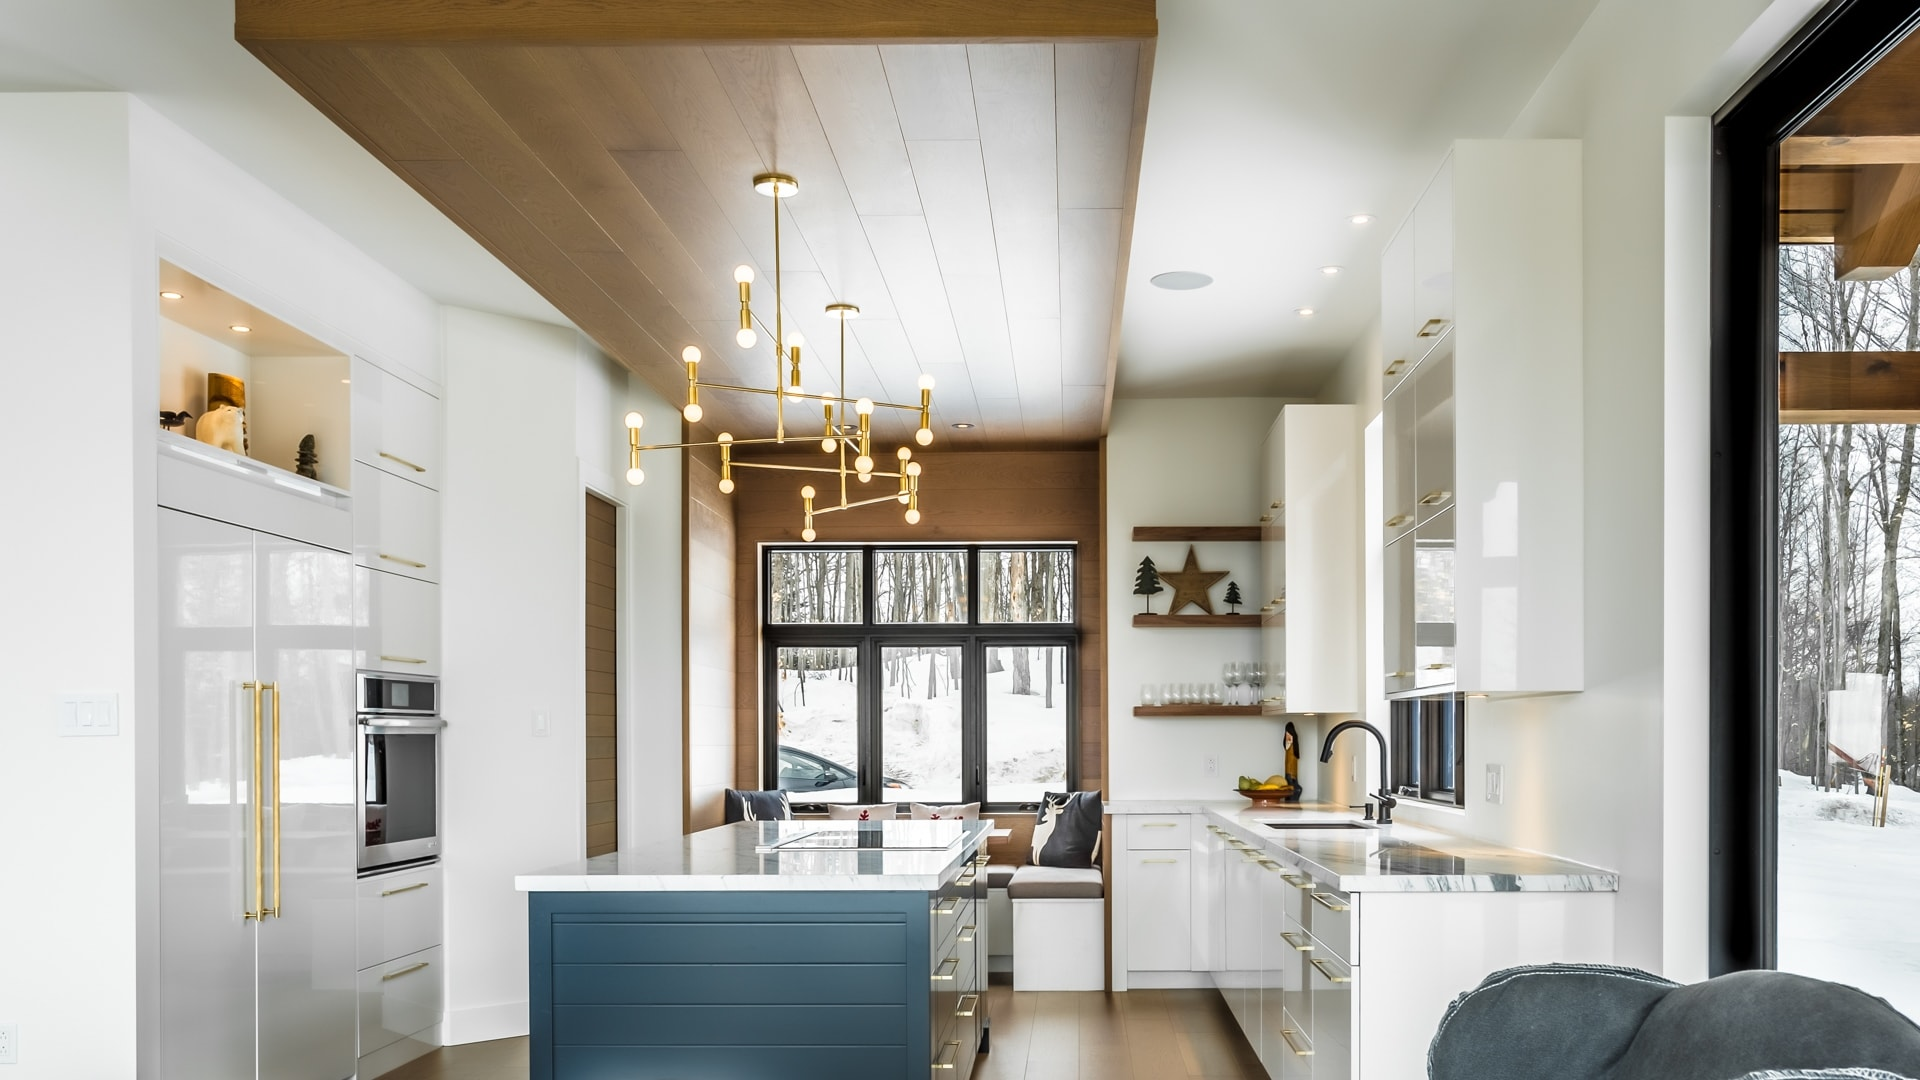 Transitional cuisine. A gold-colored metal light is suspended above the island.